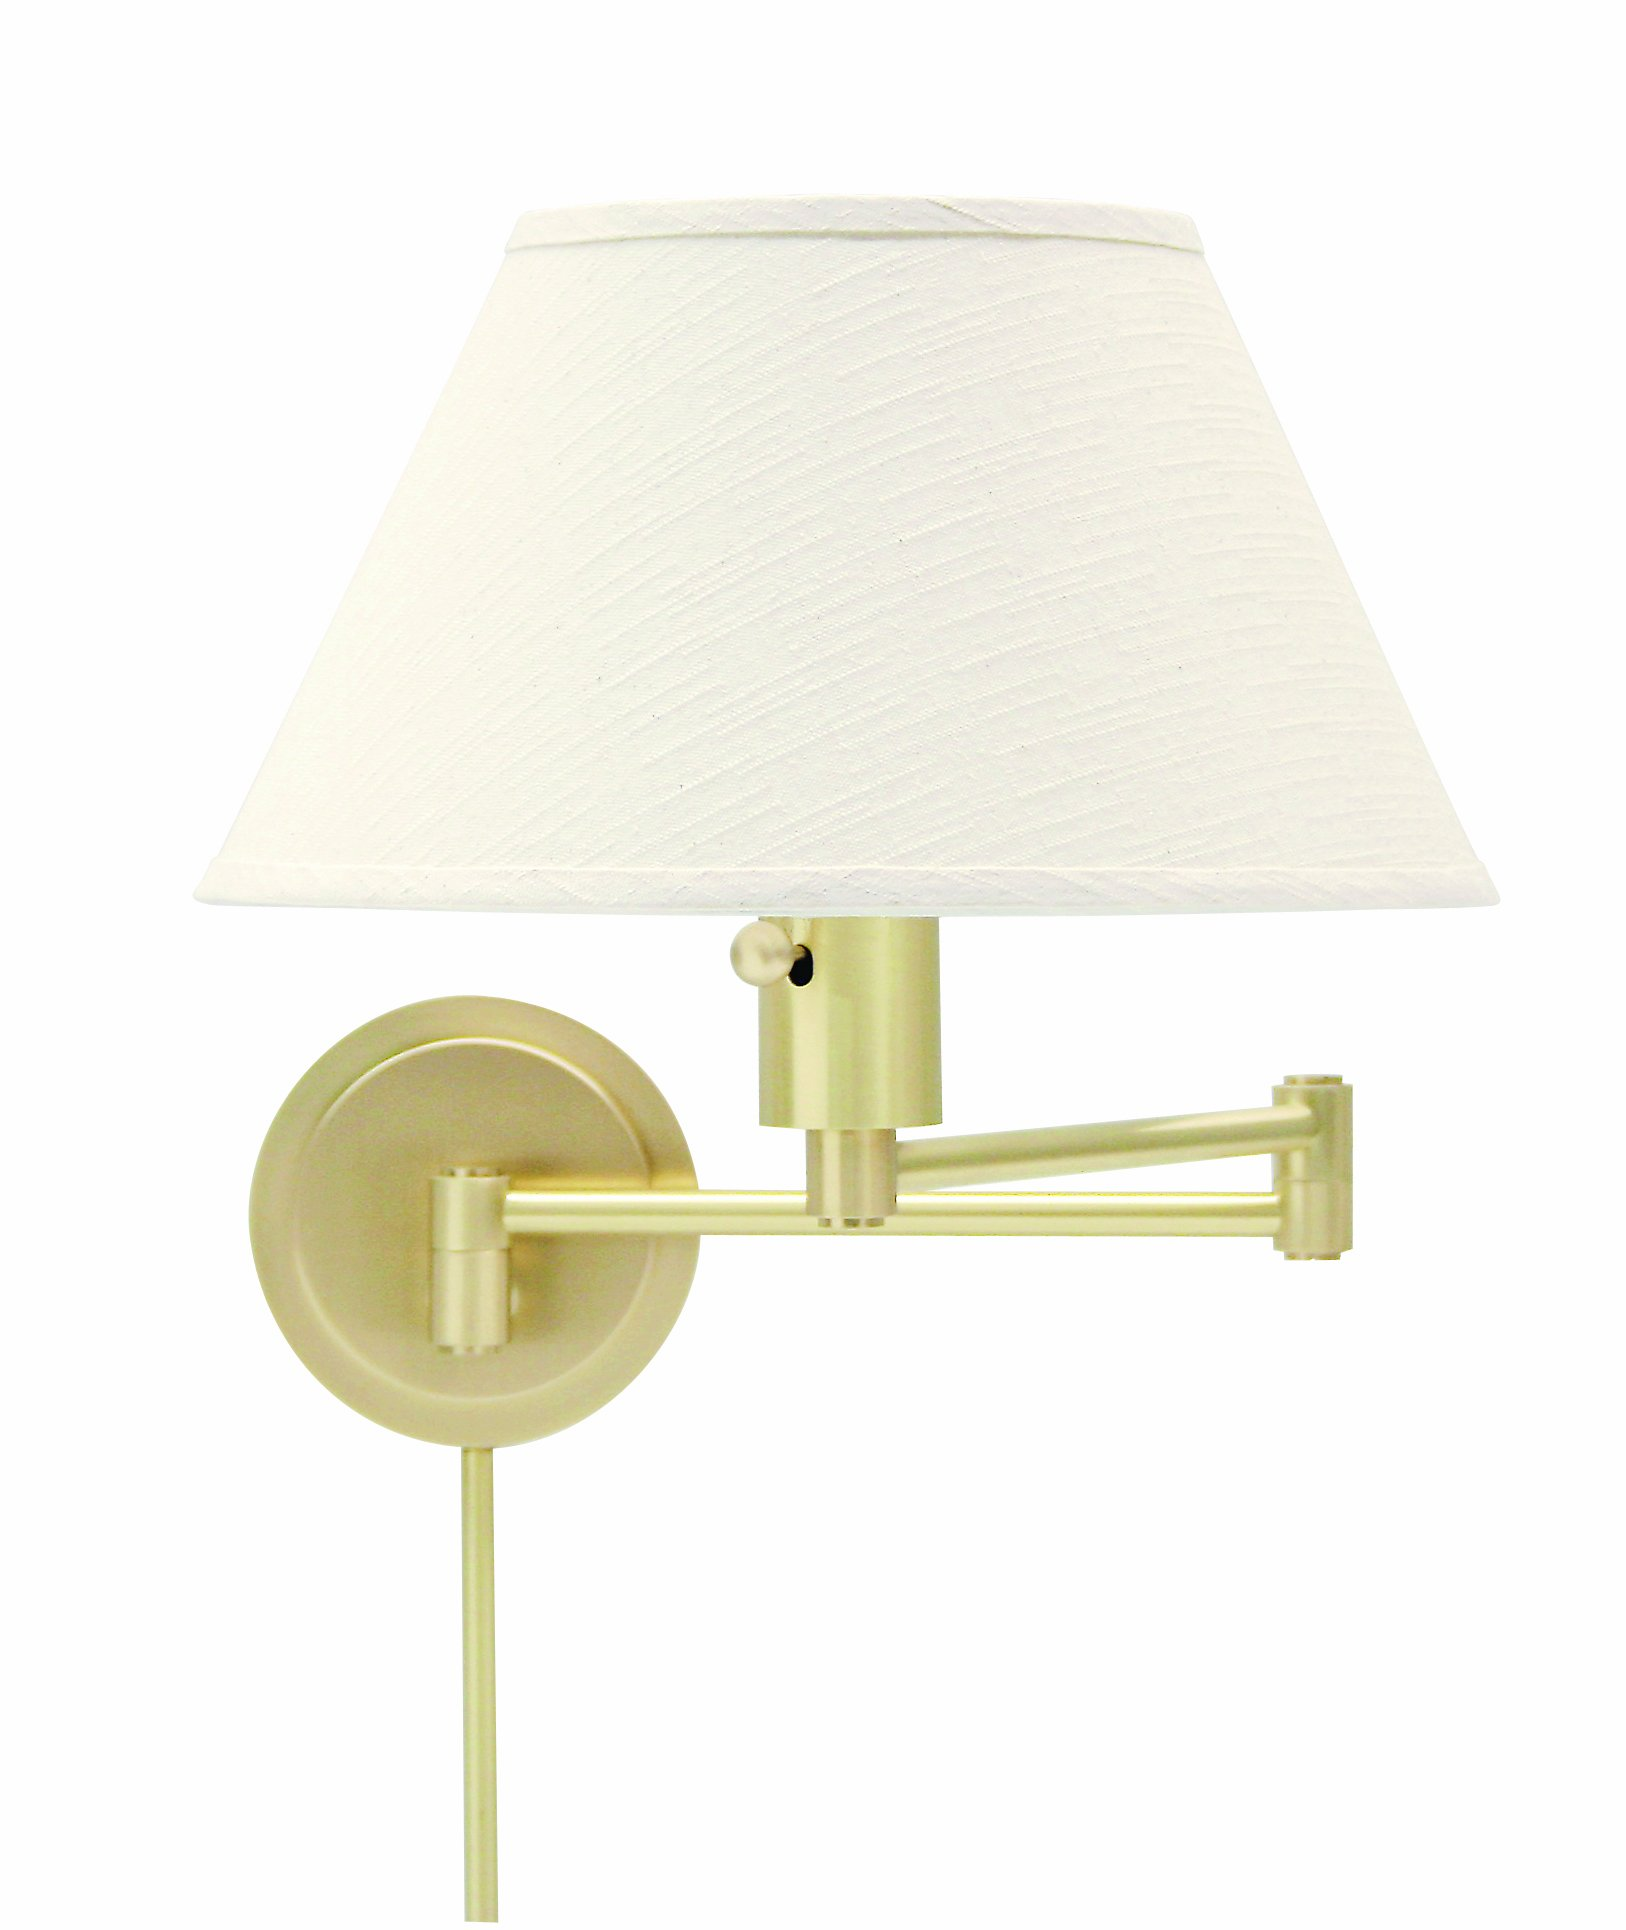 House Of Troy WS14-51 Home/Office Collection Swing-Arm Wall Lamp, Satin Brass with Off-White Linen Hardback Shade by House of Troy